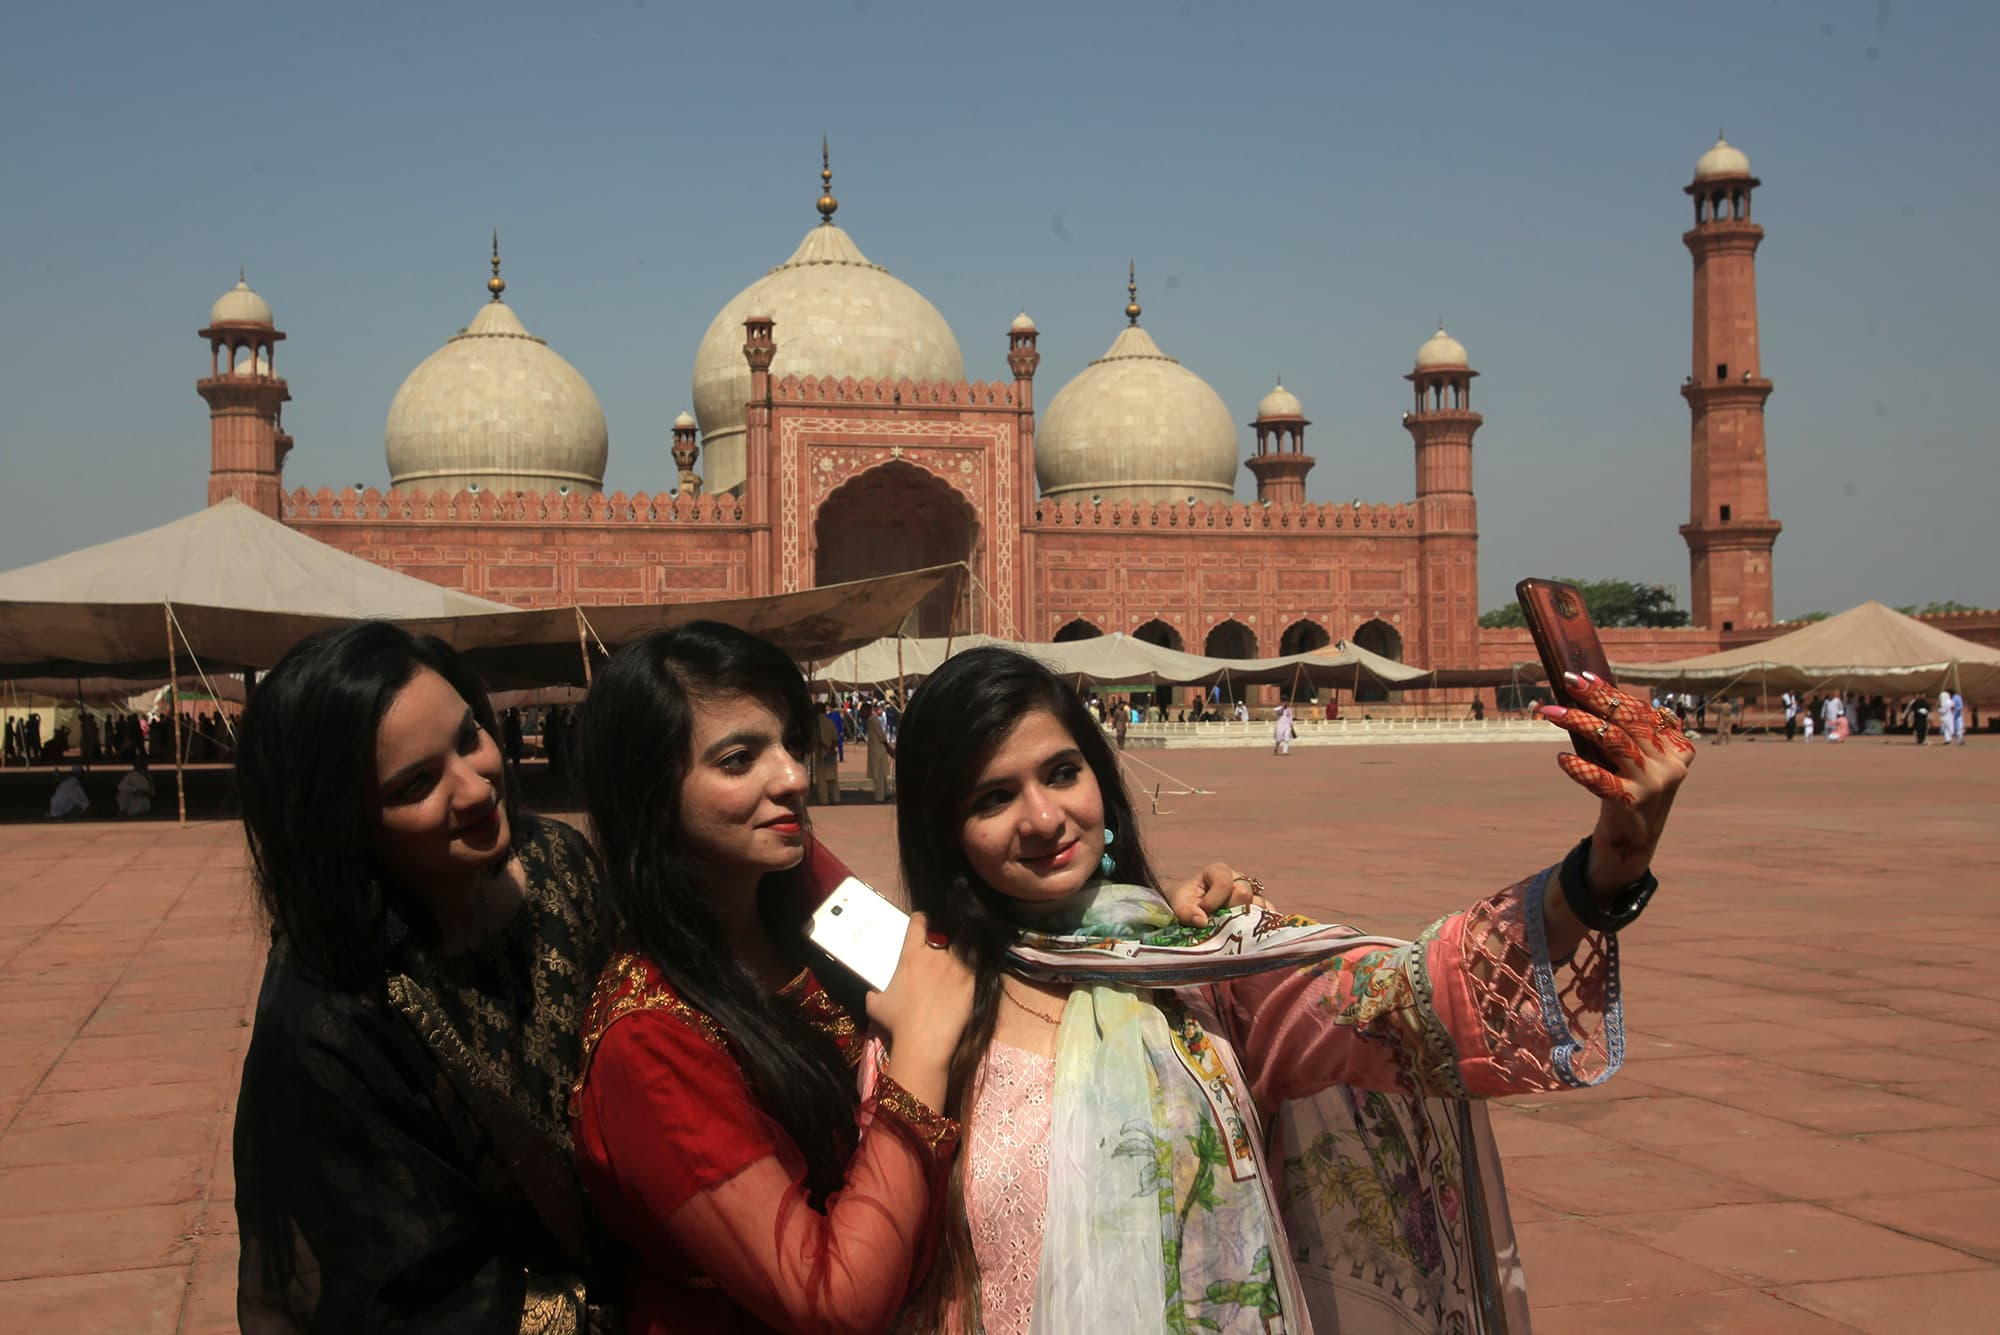 Girls take a selfie after attending Eidul Fitr prayers at the Badshahi Mosque in Lahore. — Reuters